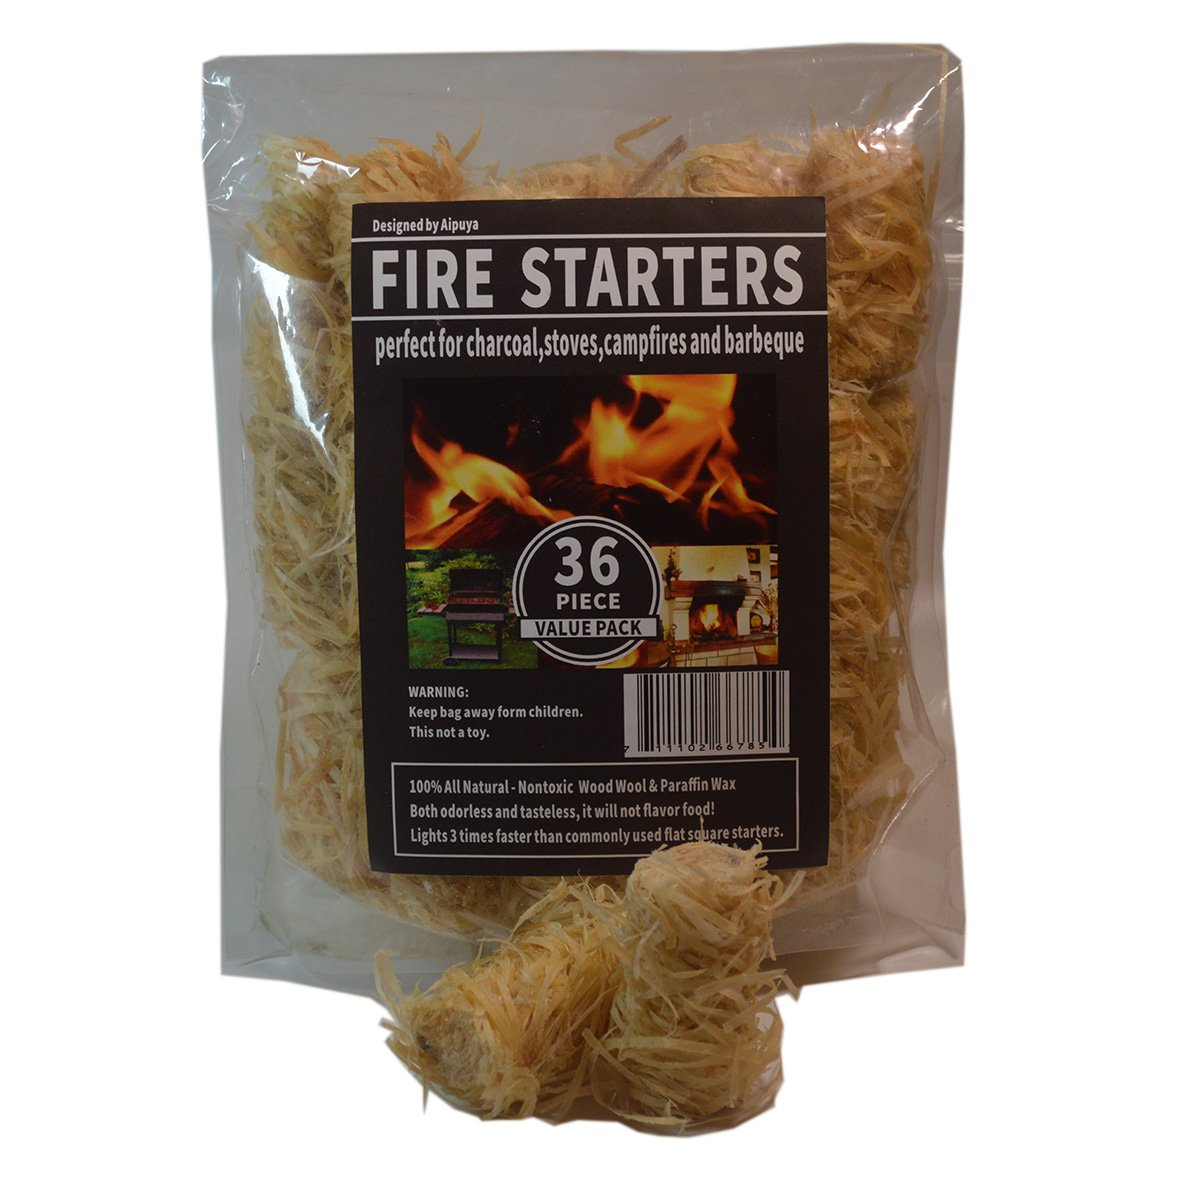 100% All Natural Charcoal Fire Starters Waterproof,Super Fast Lighting,Perfect for Barbecue Grills, Kamado, Smokers, Wood Stove and Campfire (36pieces) Ltd.